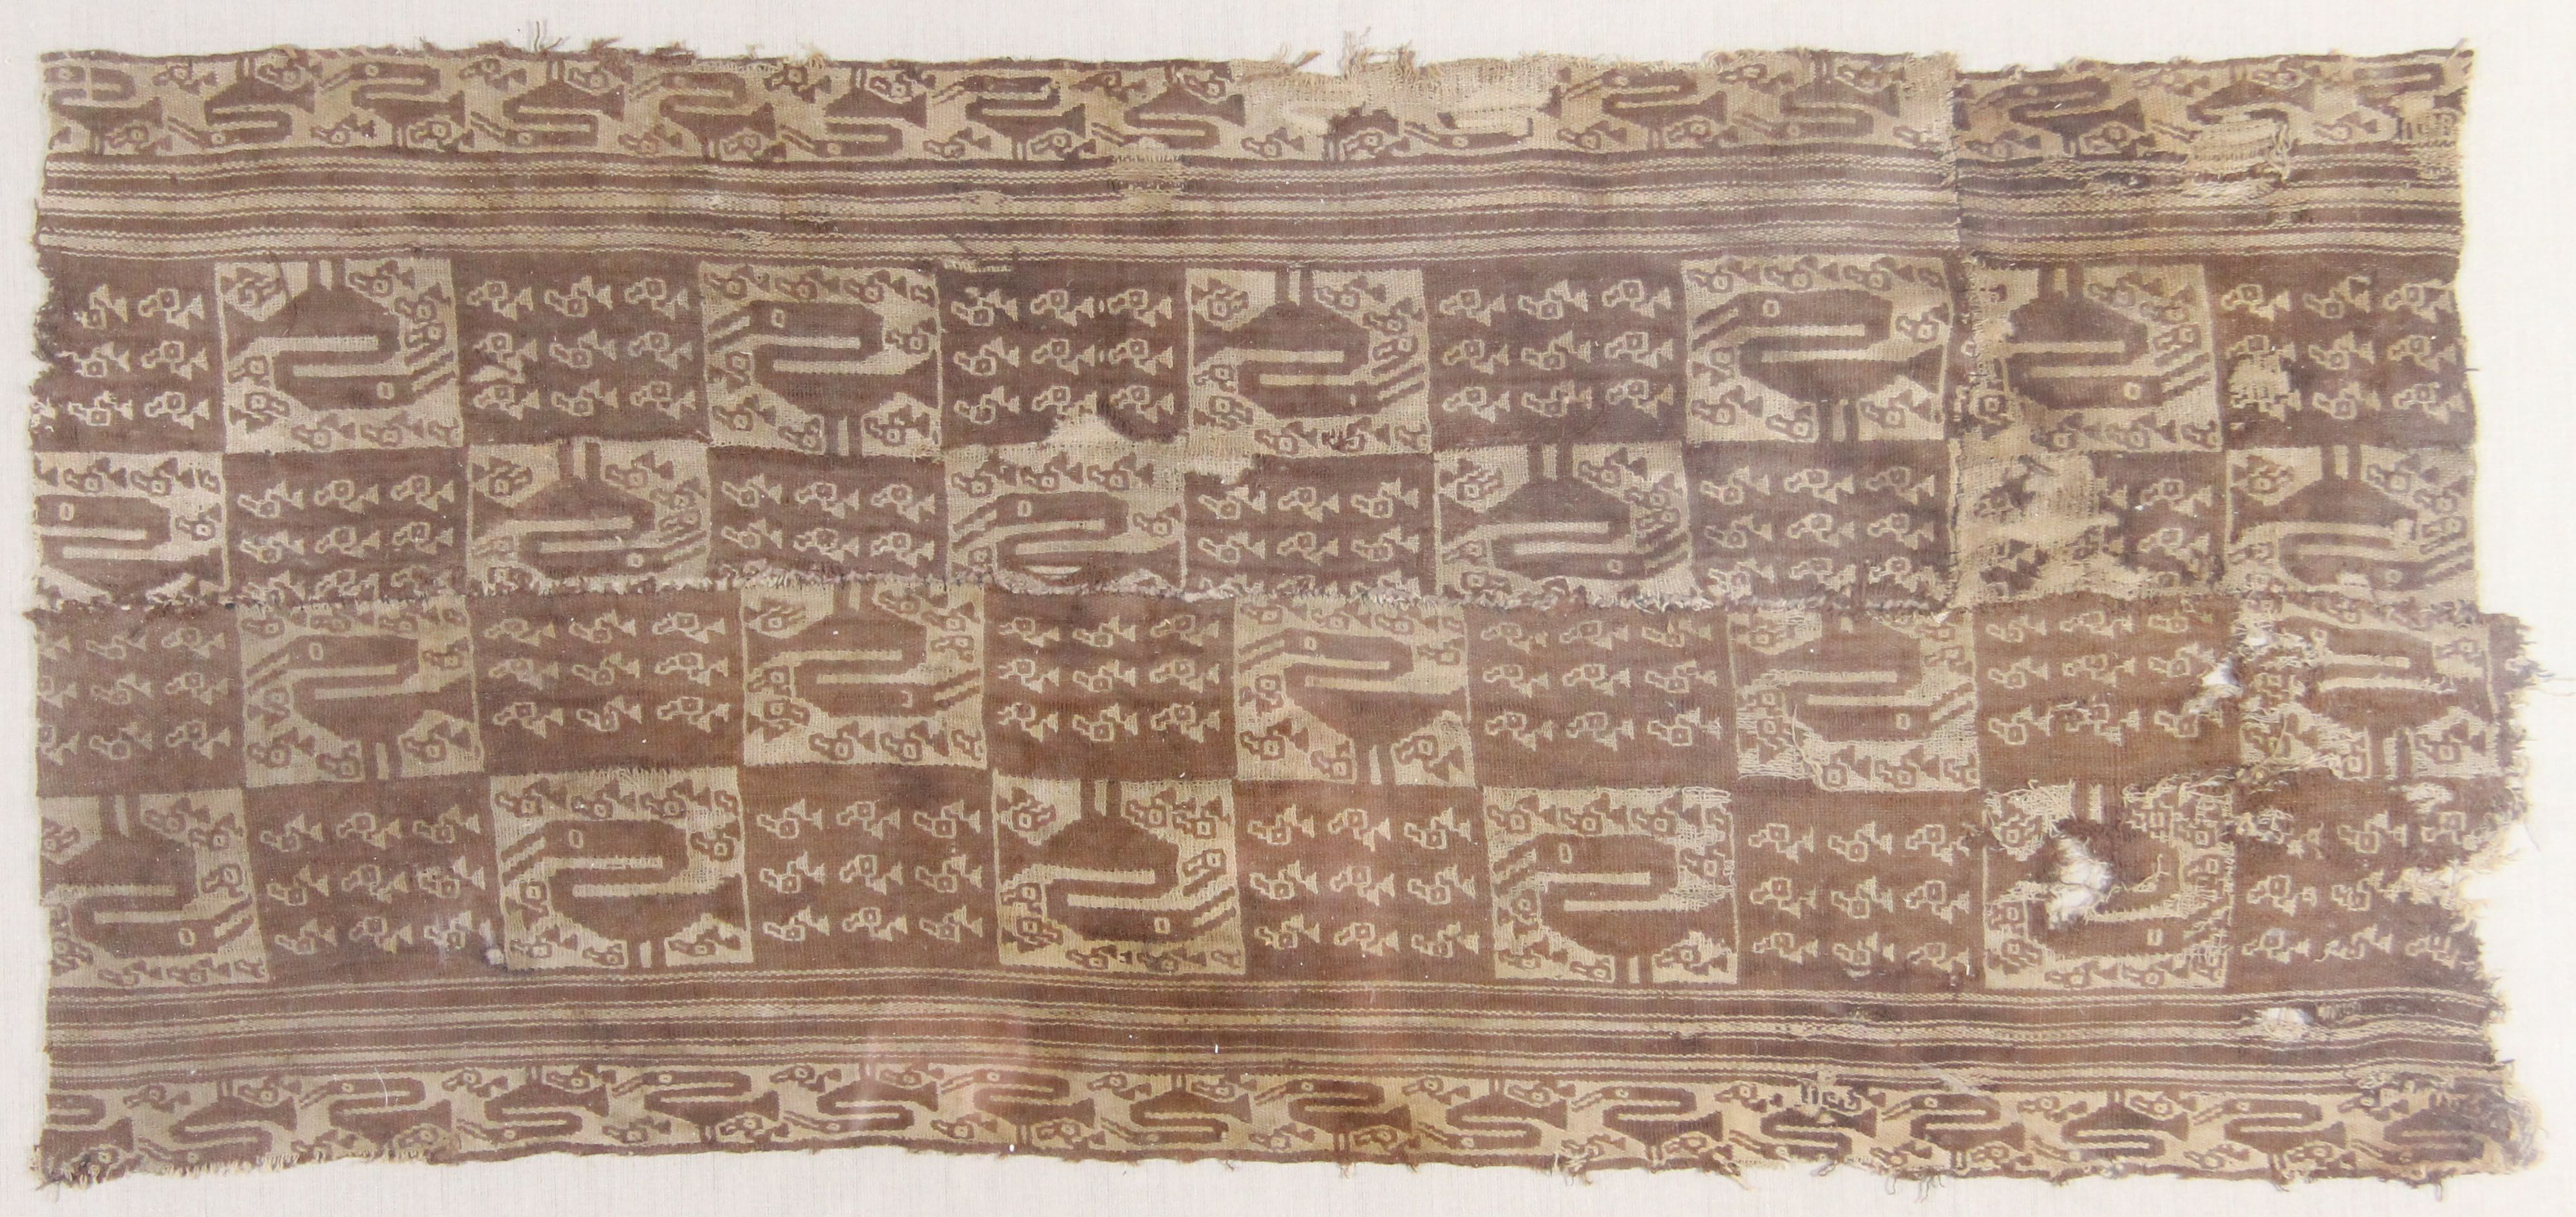 Woven wool textile (fragment)